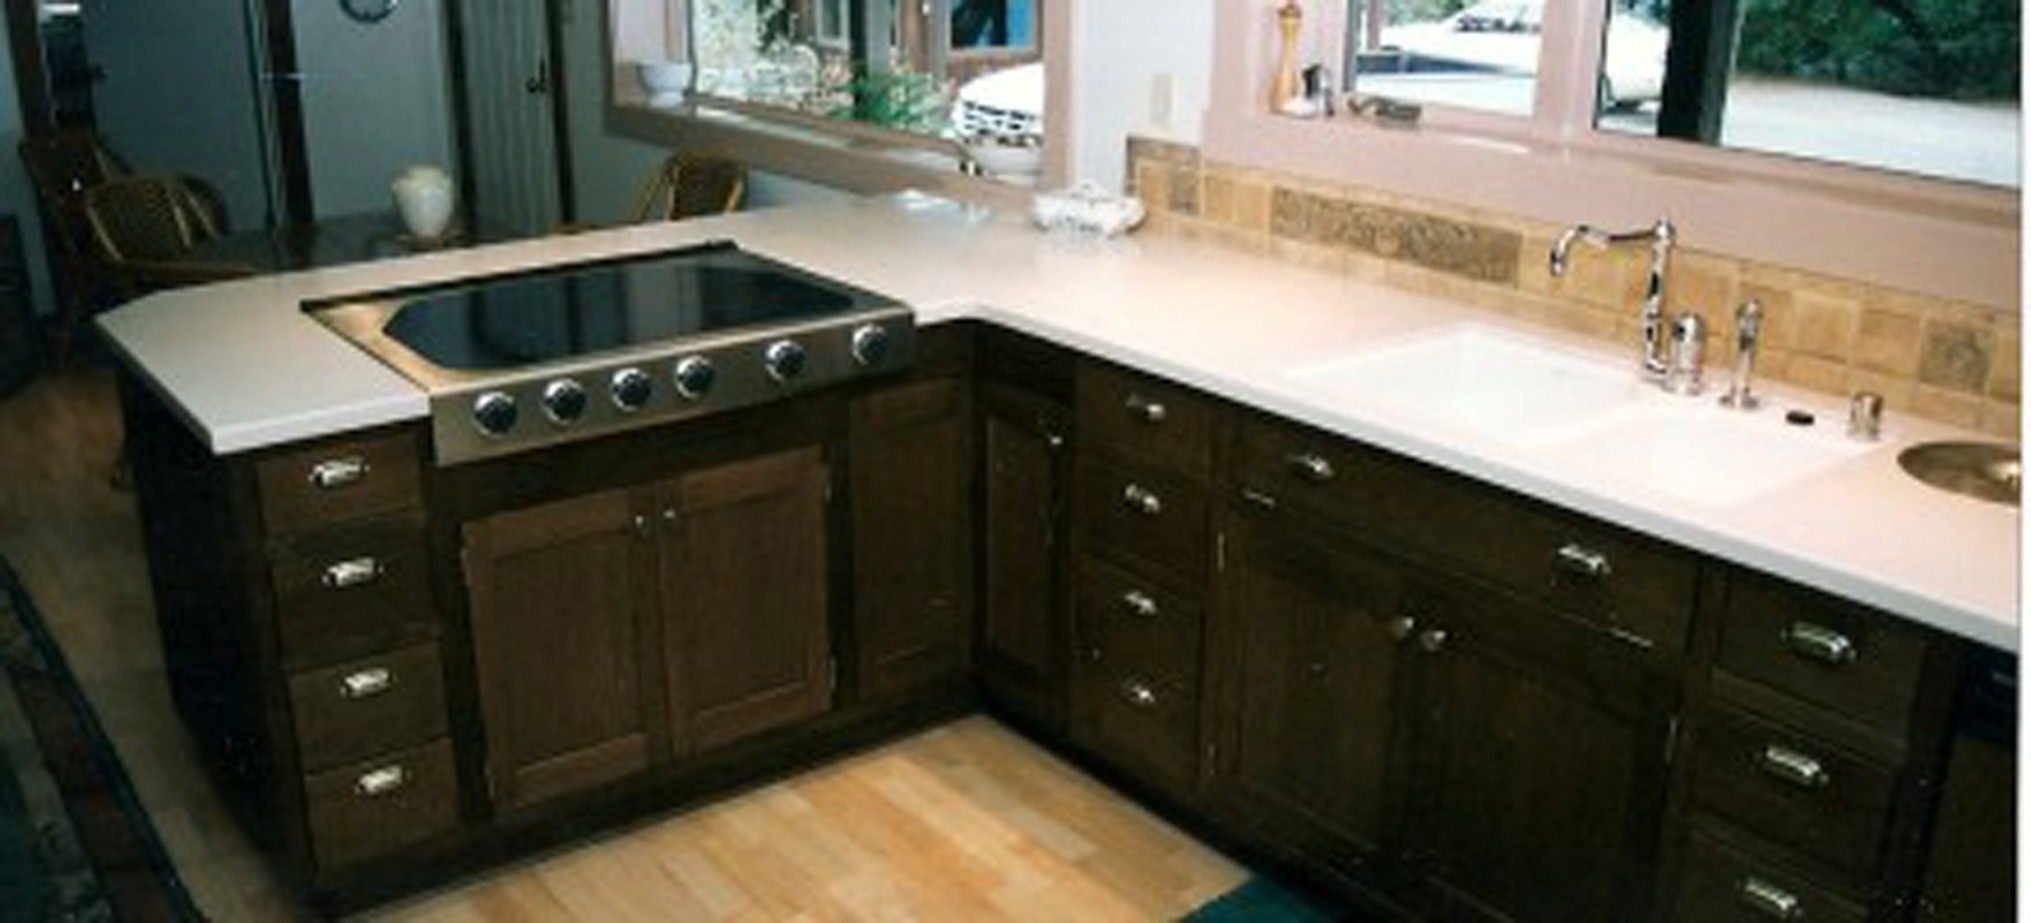 Modern Kitchen Furniture Design With Licious White Window And Nice Green Kitchen Rug Design (View 12 of 31)